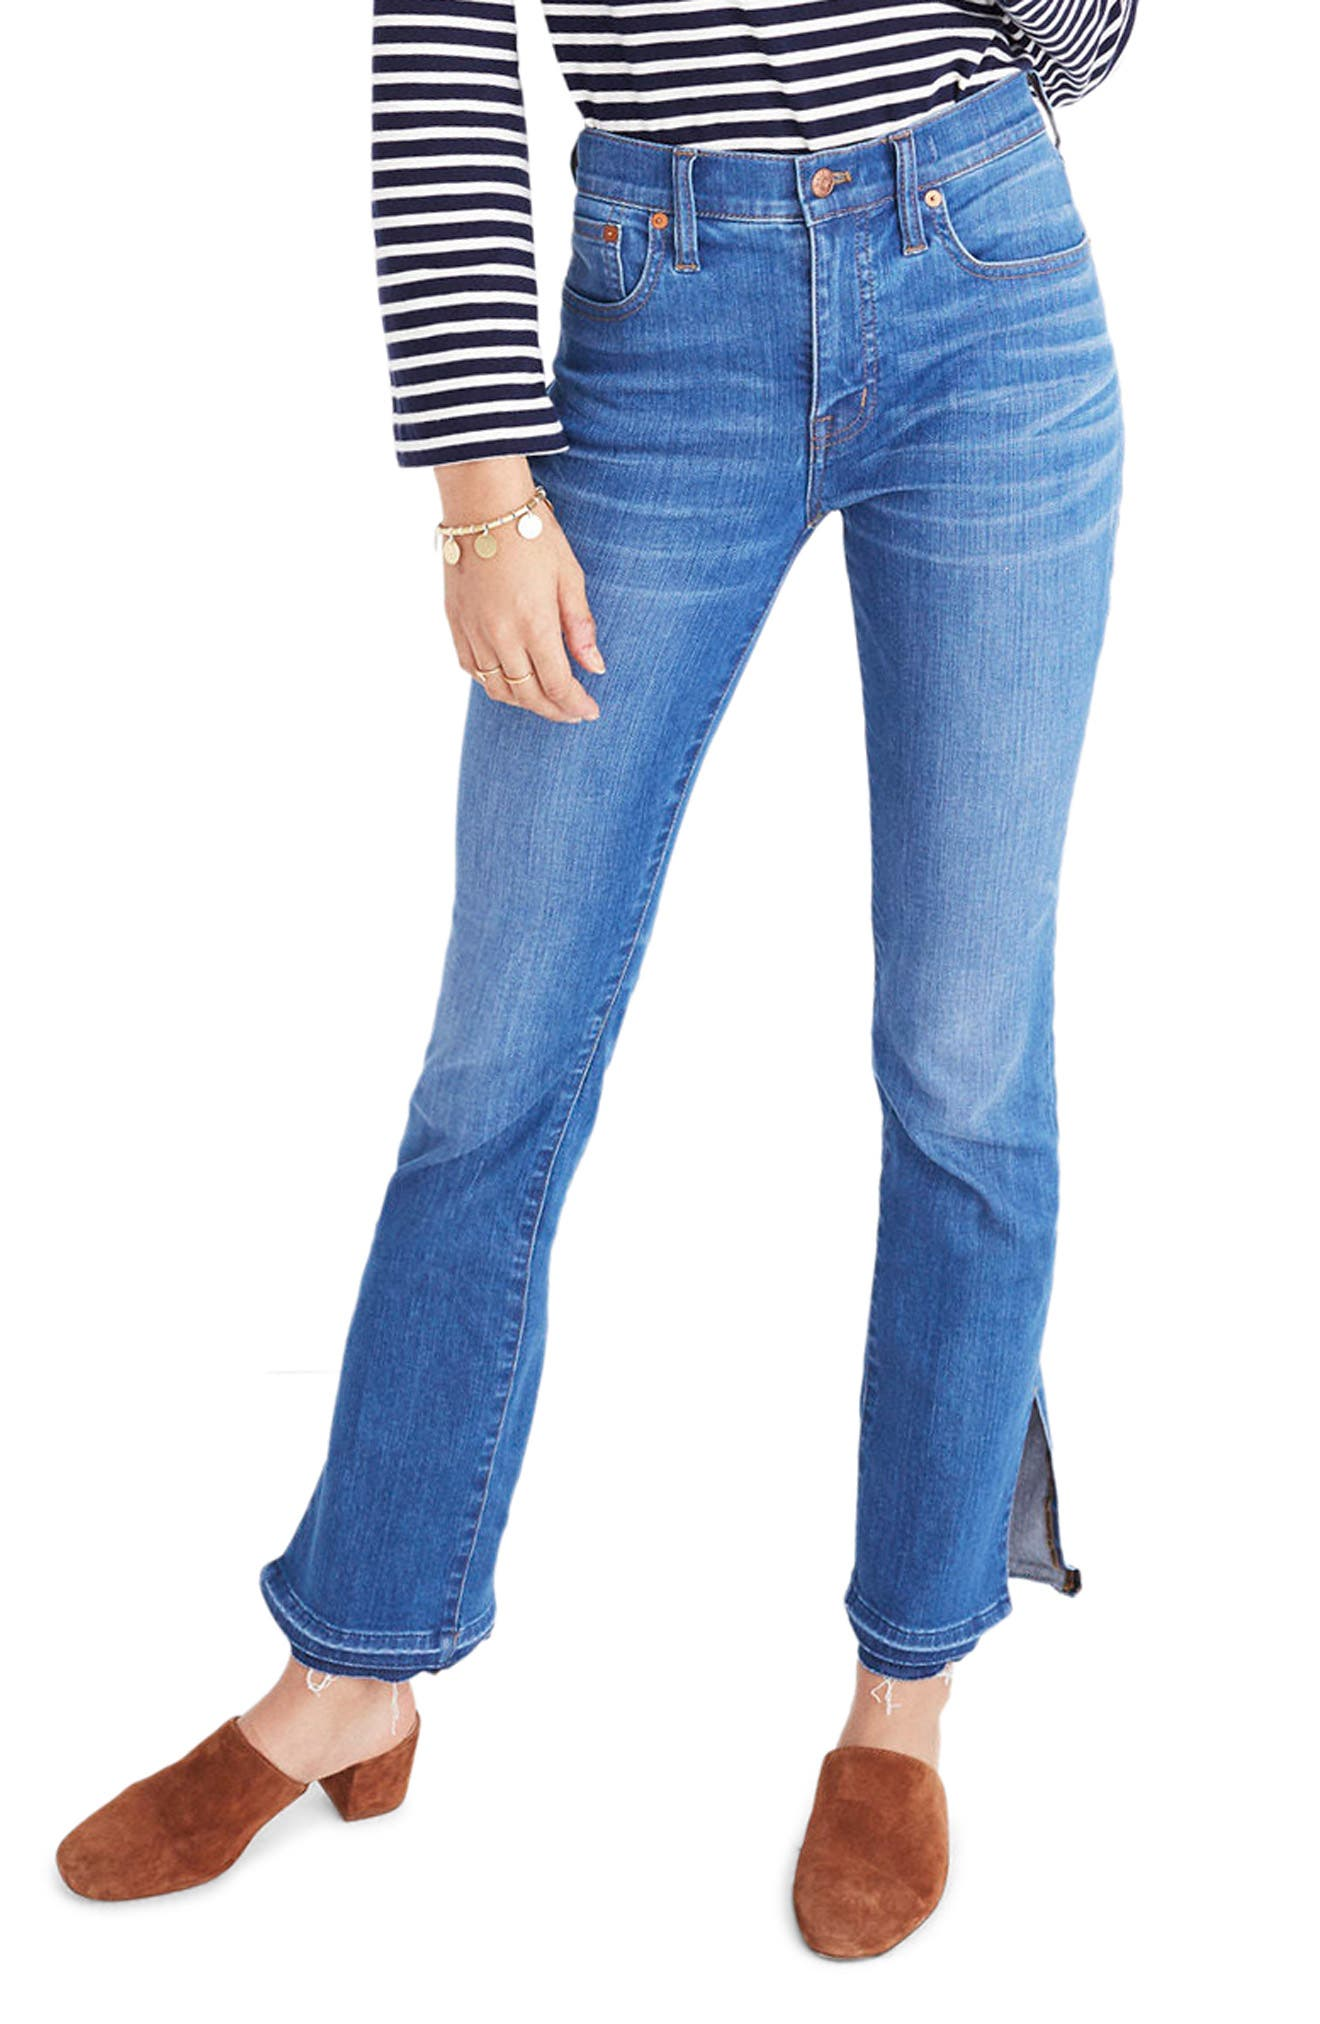 Main Image - Madewell Cali Split Hem Demi Boot Jeans (Joan Wash)